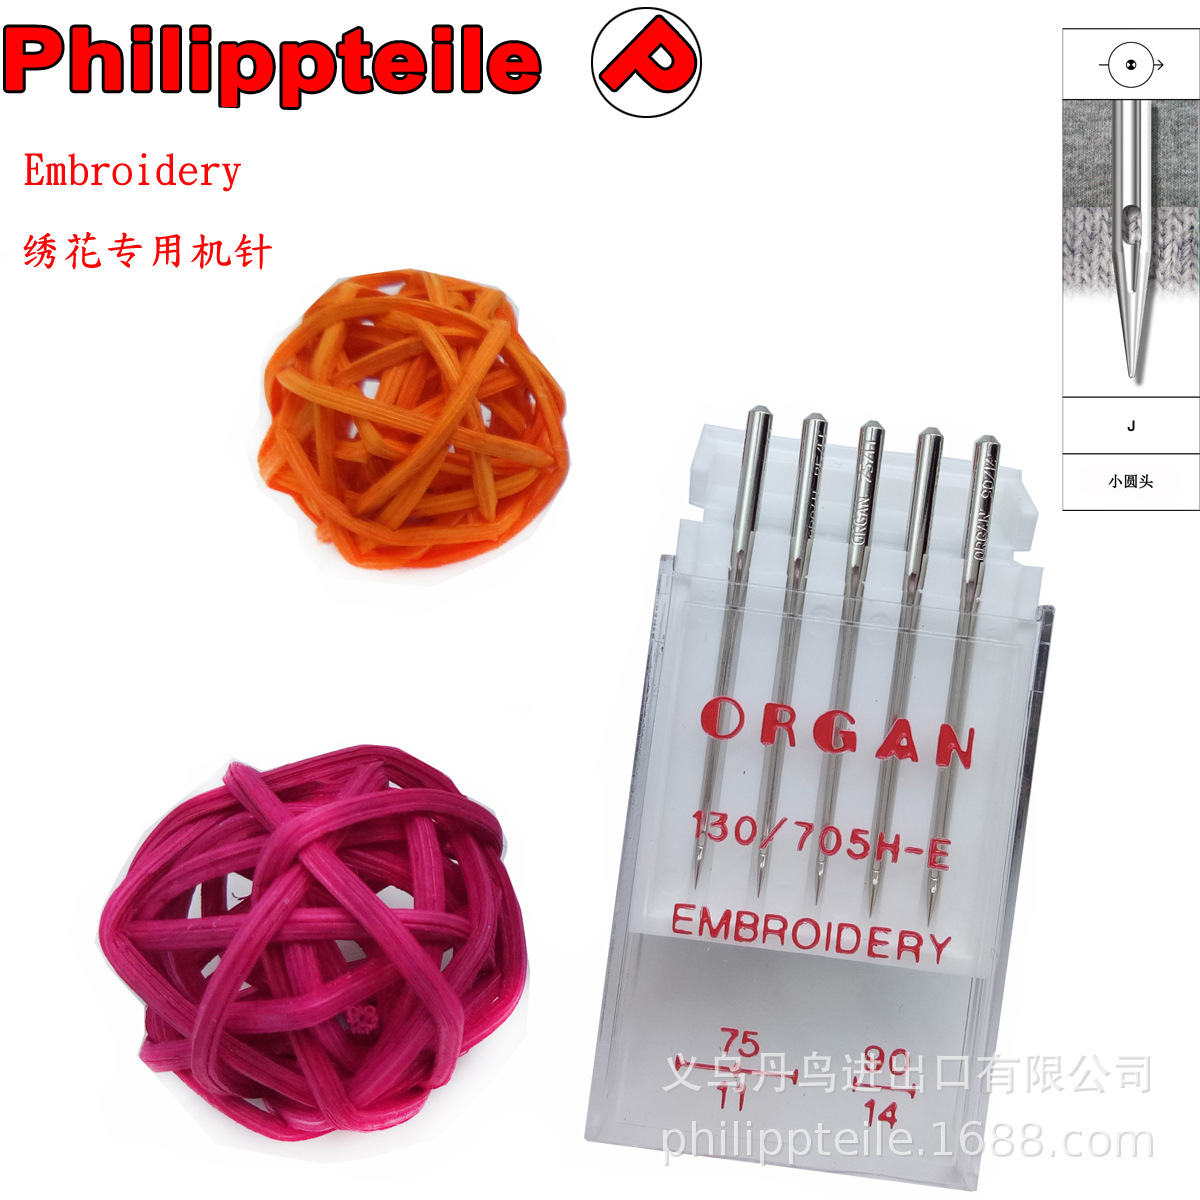 5Top Quality Machine Needles Embroidery 130/705H-E Organ household sewing machine needle embroidery embroidery special needle image